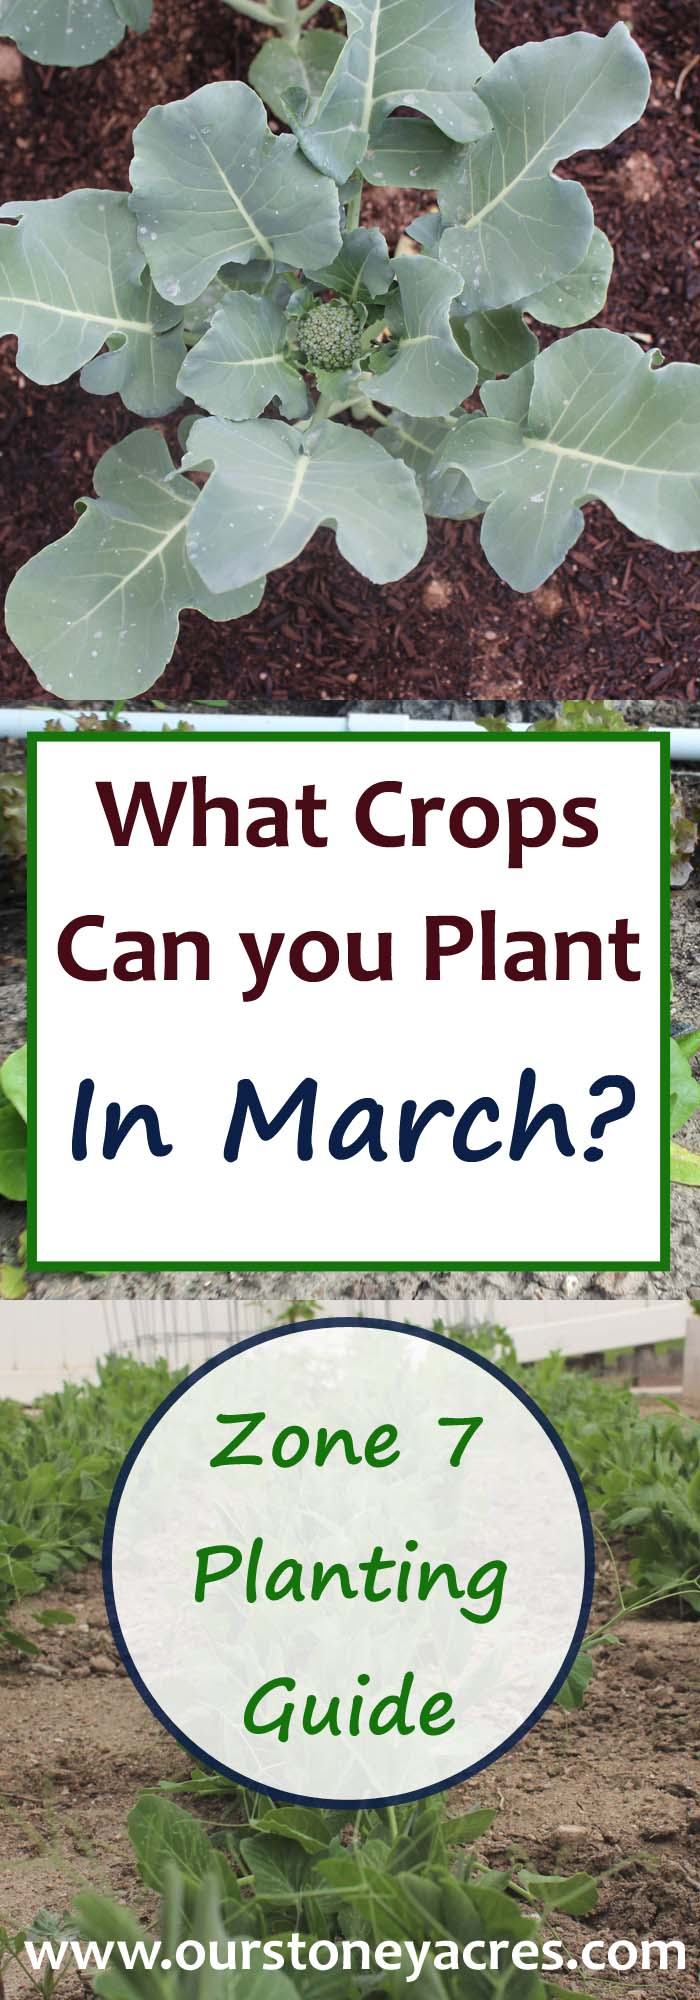 March Planting Guide for Zone 7